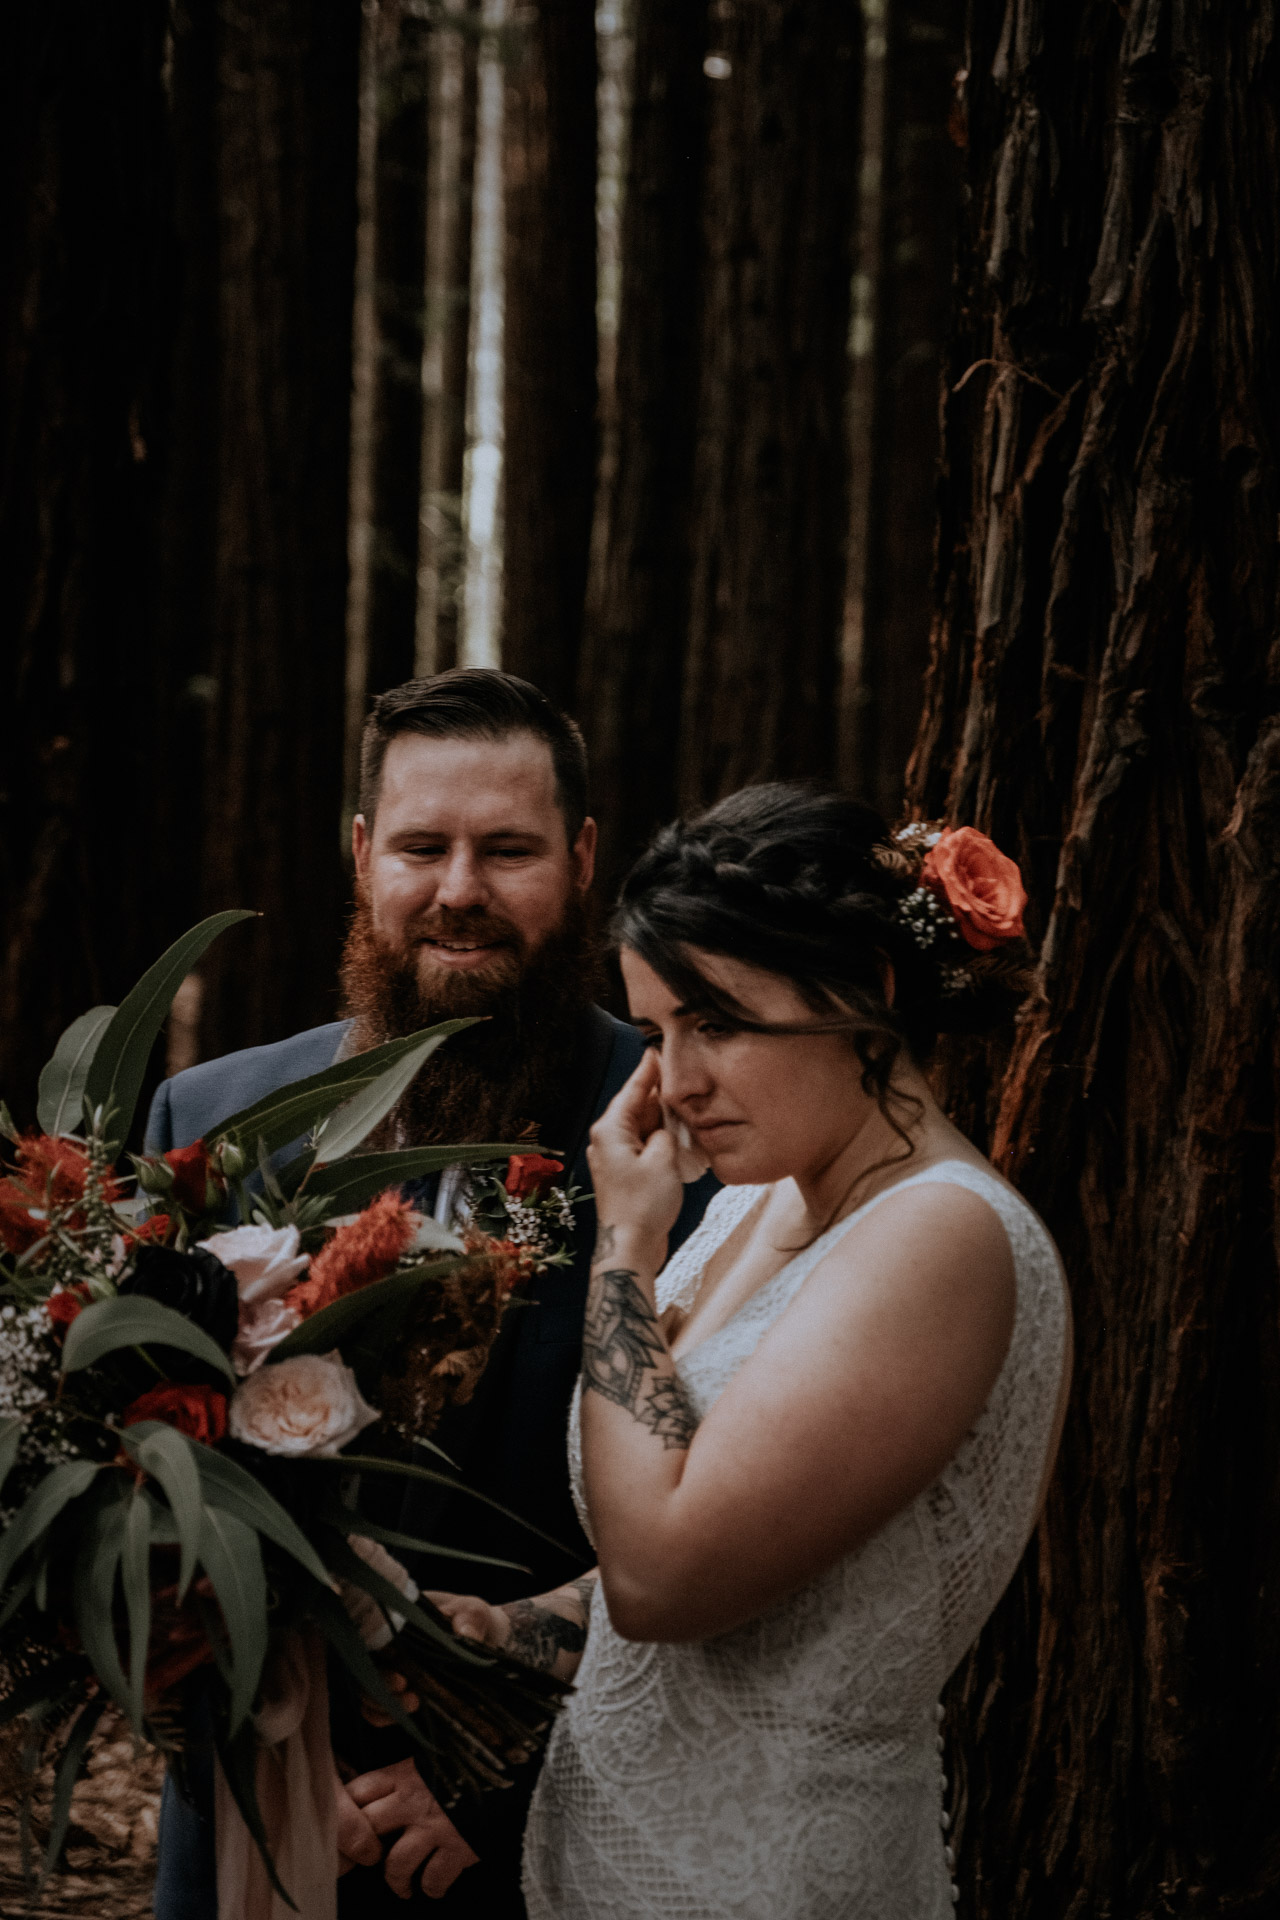 A small wedding, candidly captured with intimate vibes, in the Redwood Forest in Warburton, near Melbourne